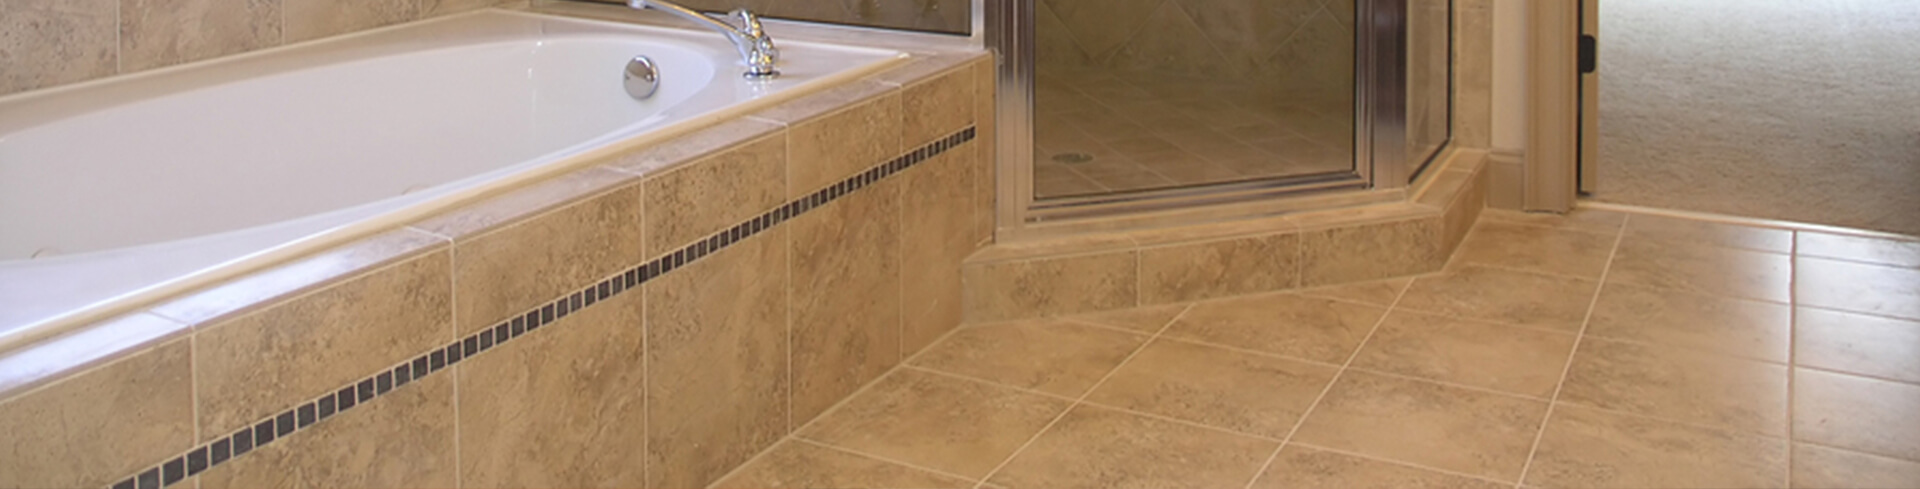 Professional Damaged Grout Repair Services Banner